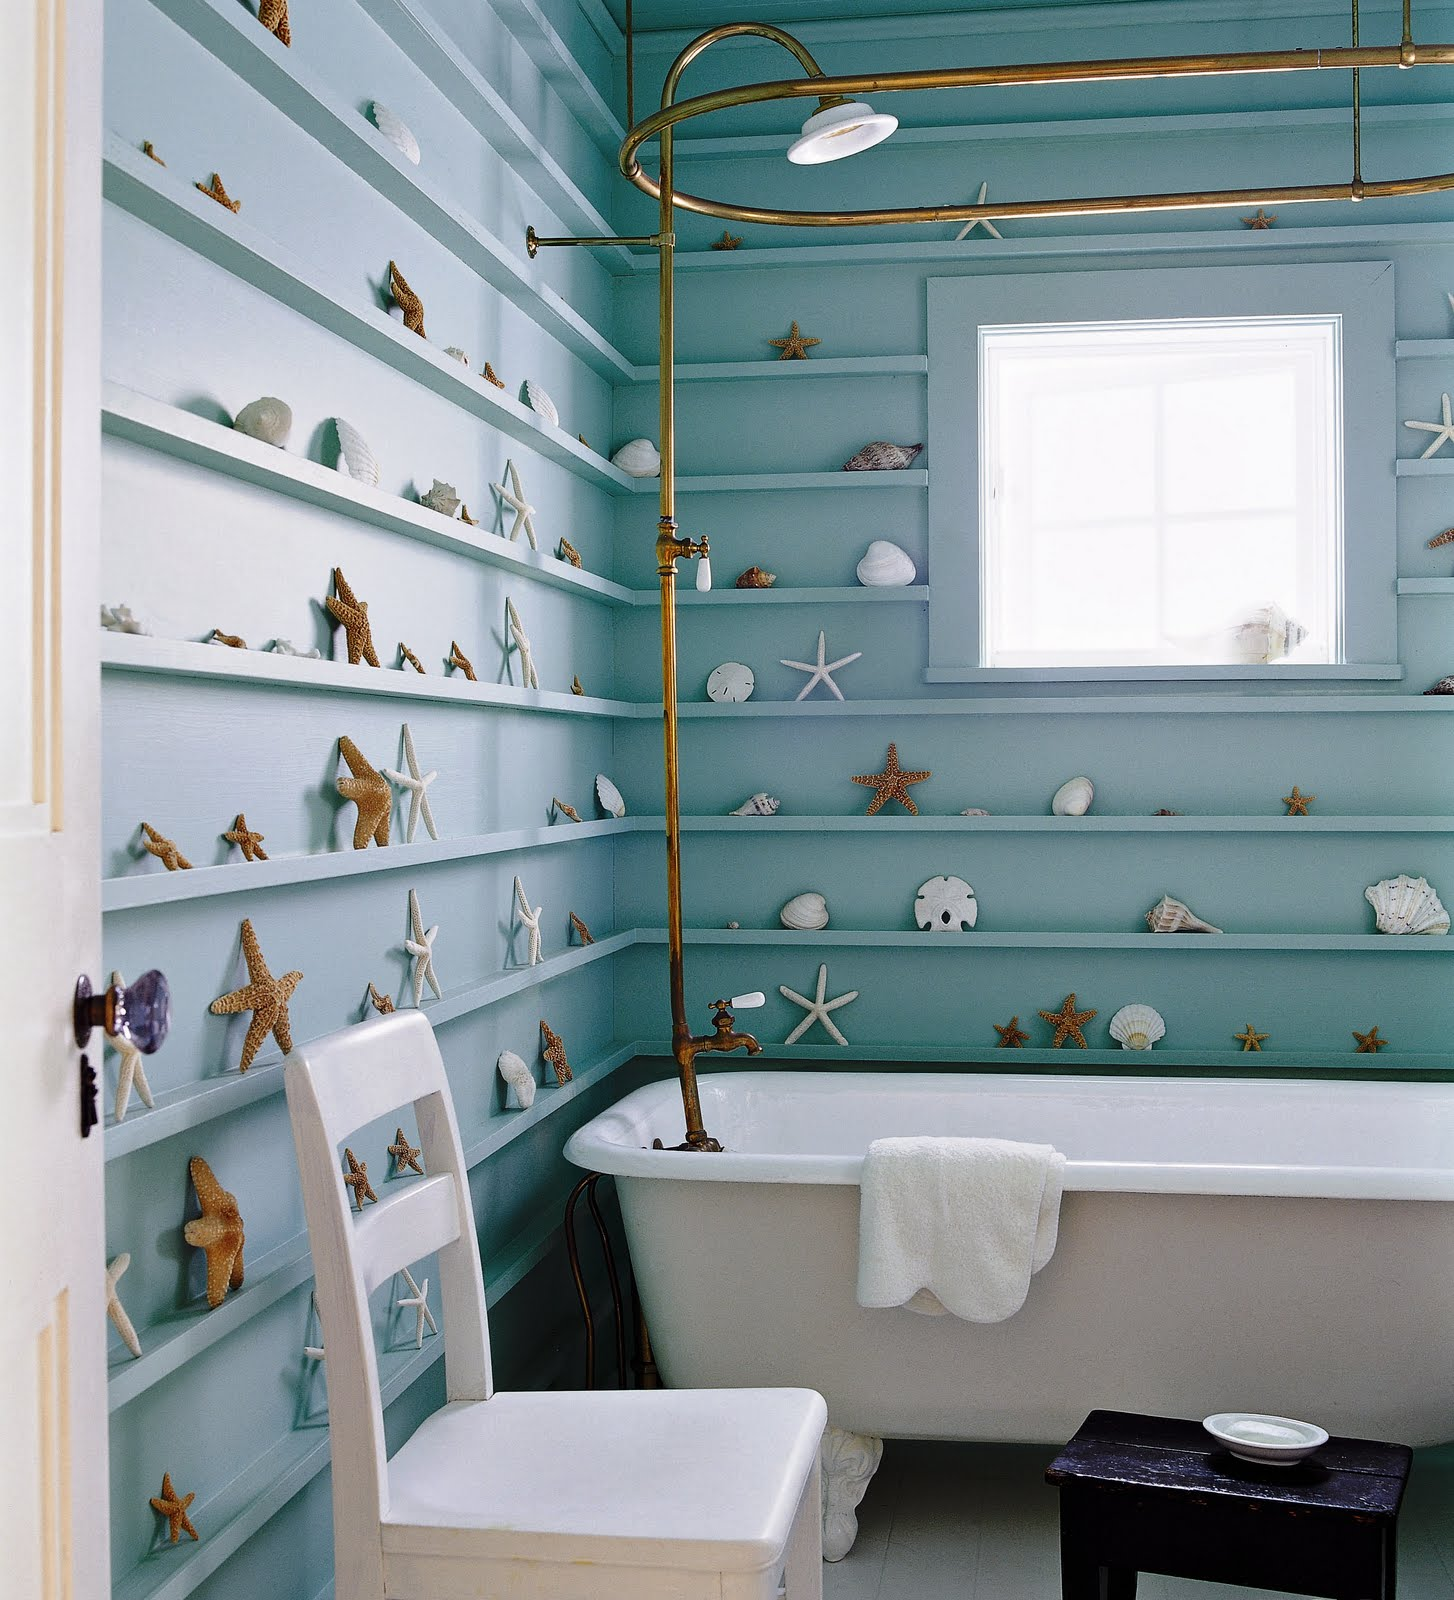 Ez decorating know how bathroom designs the nautical for Beach themed bathroom decor